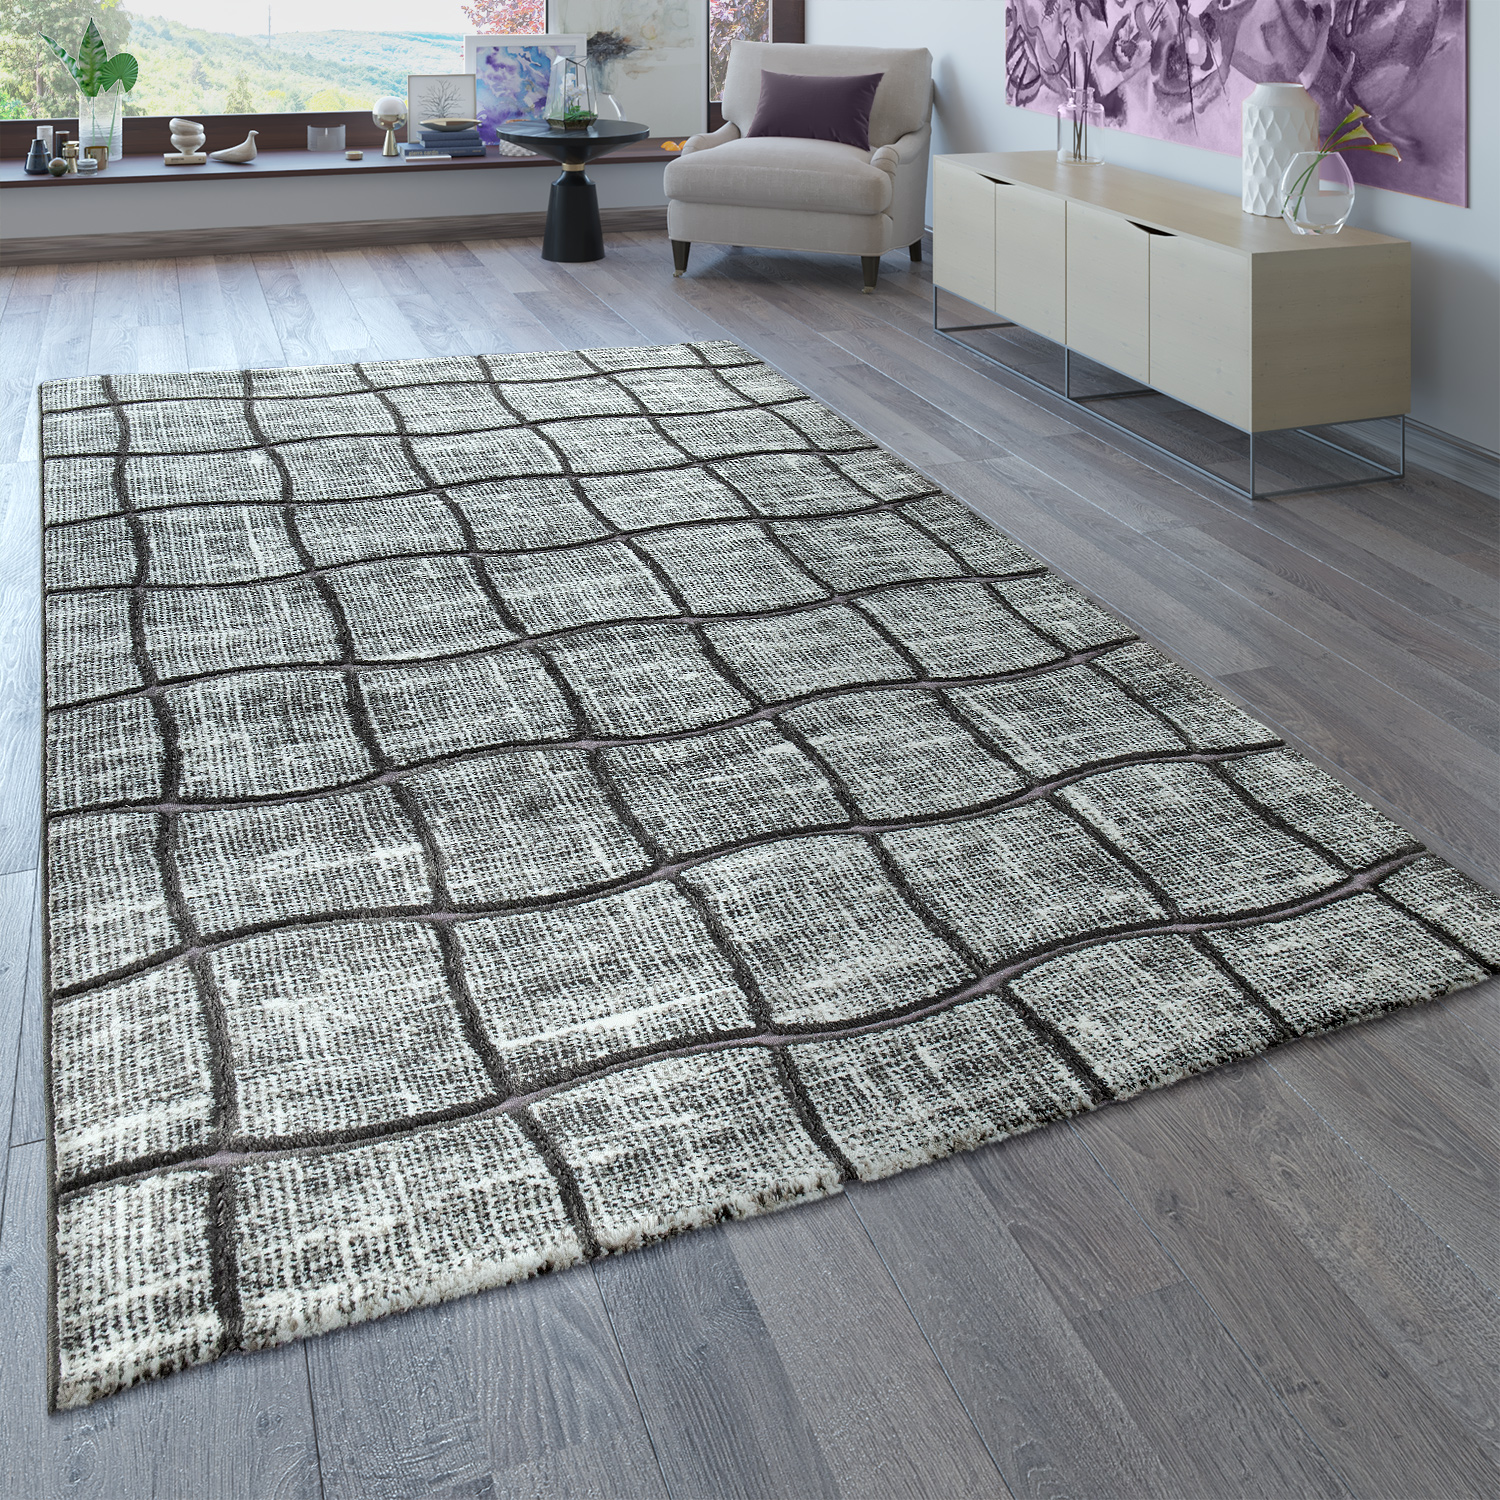 Designer Rug Living Room Grey Anthracite 3D Check Pattern Abstract Short-Pile